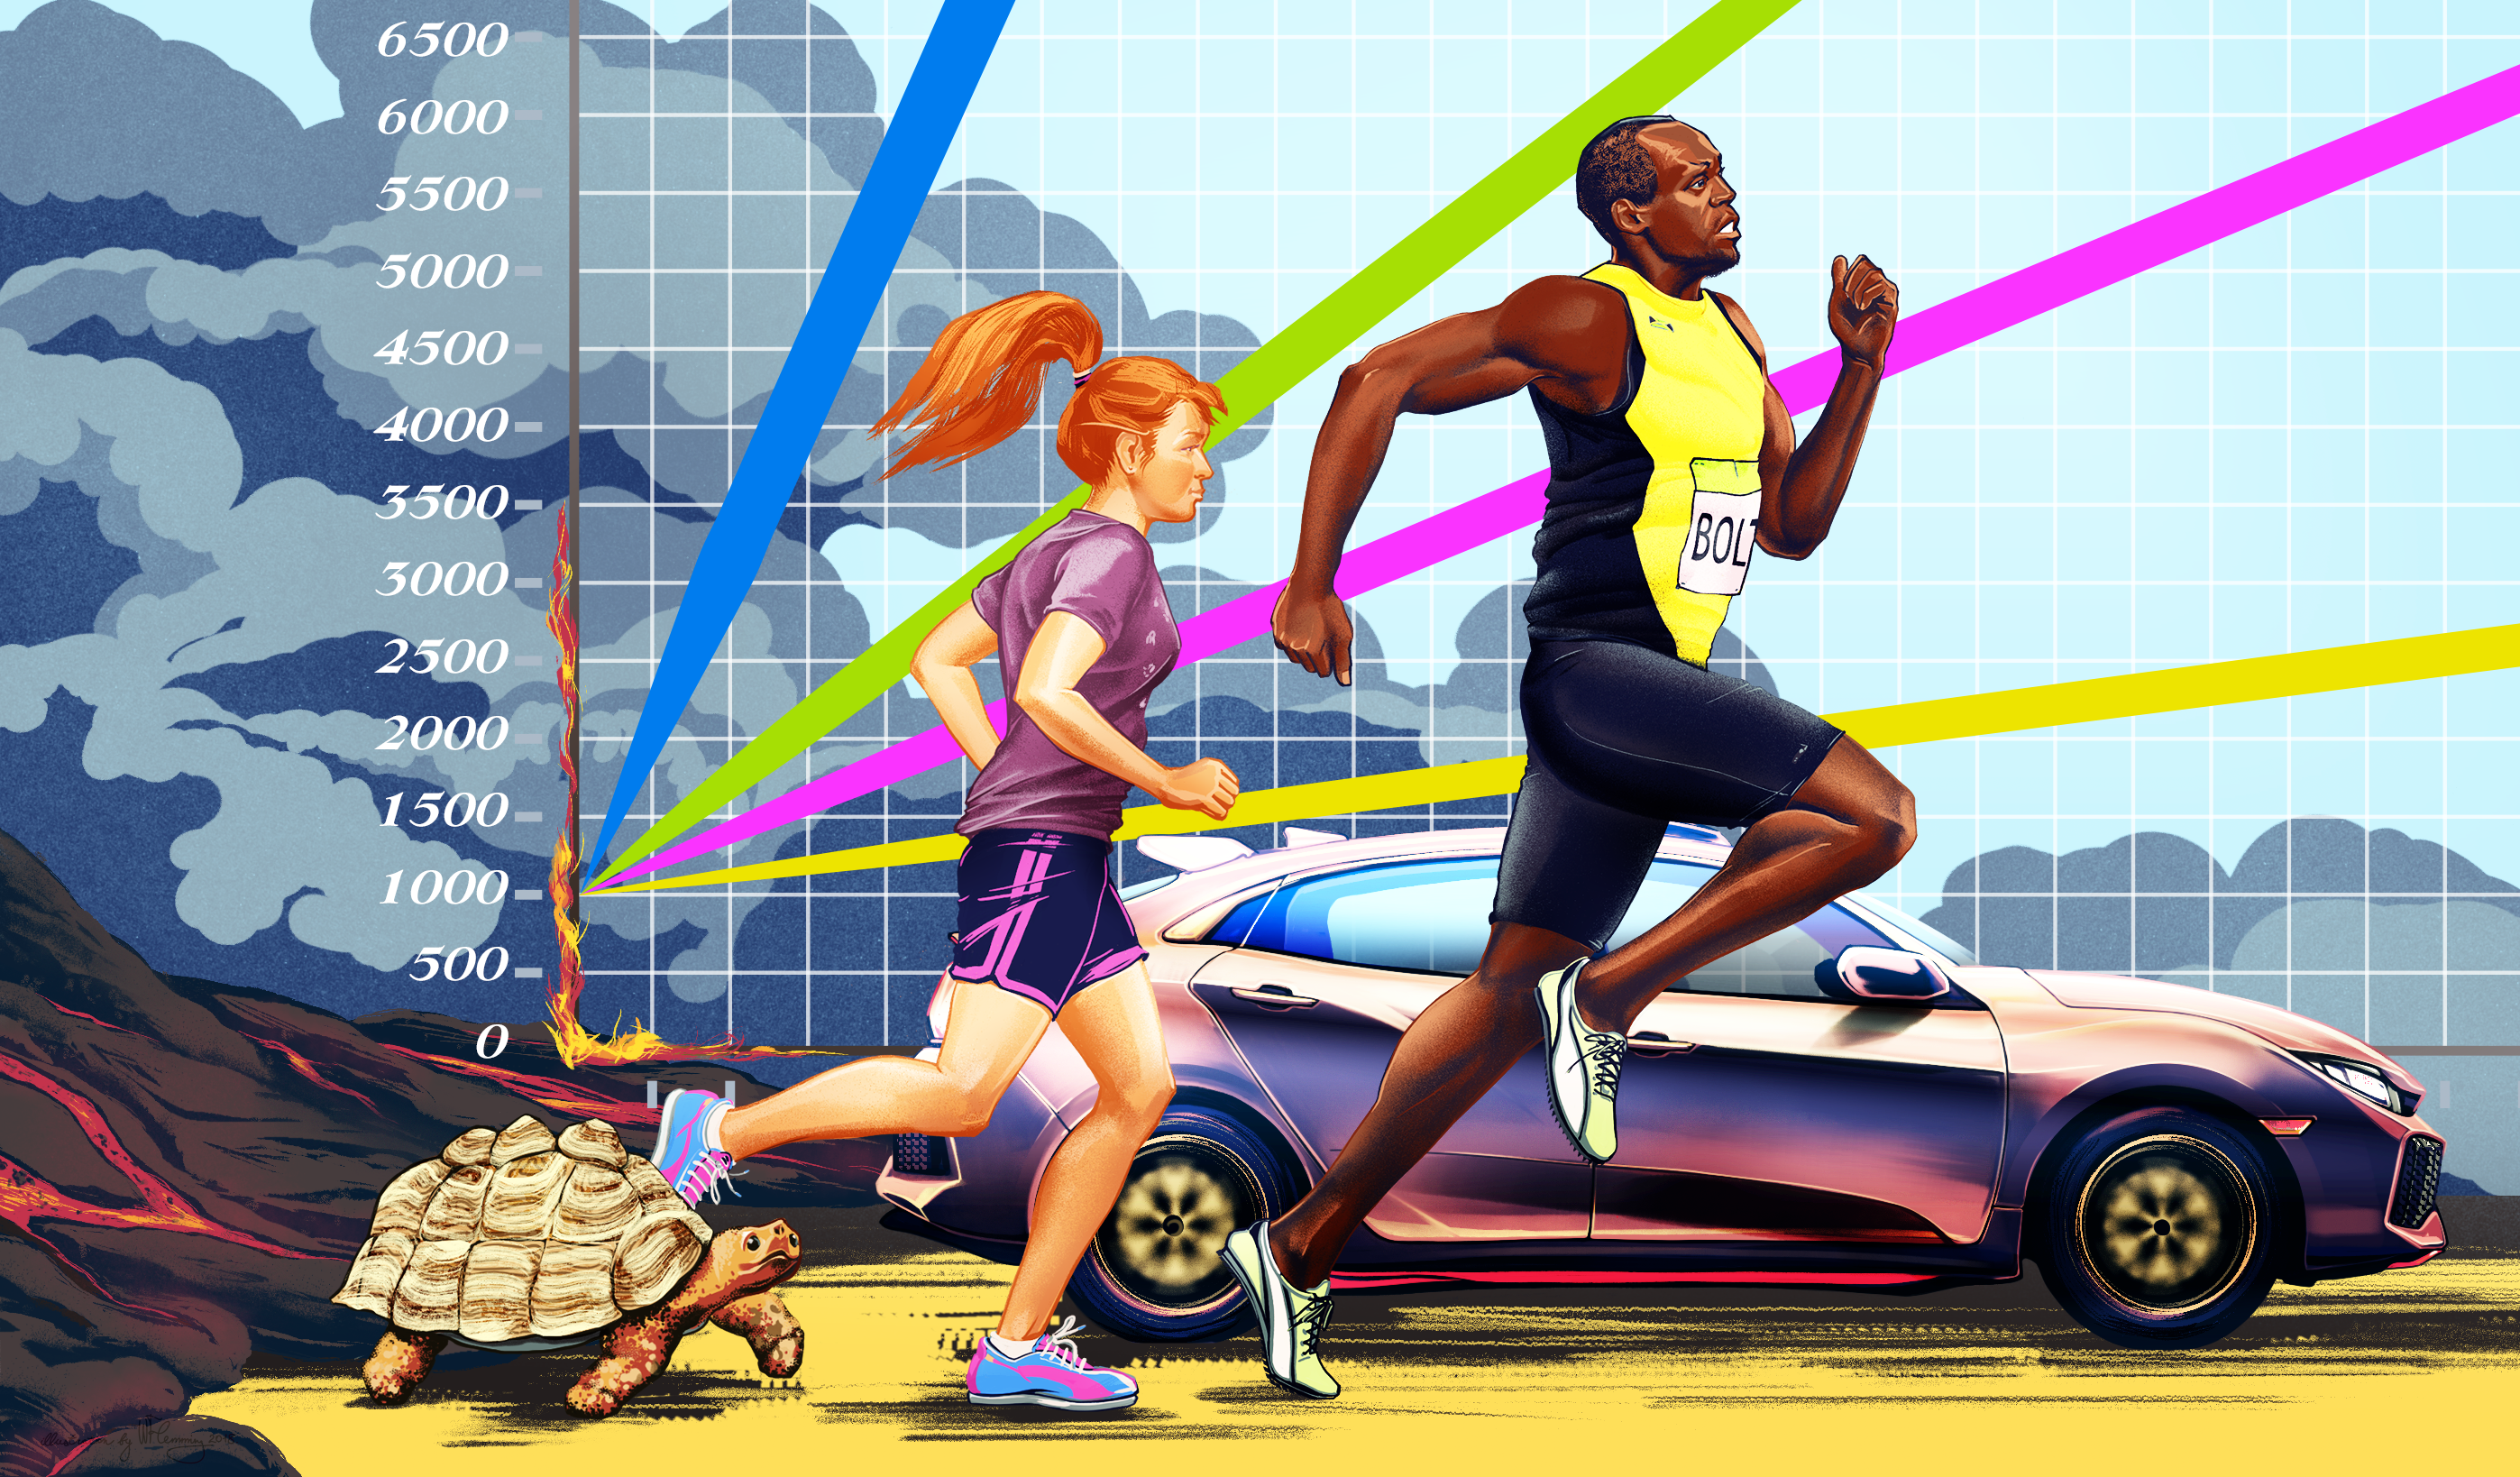 A tortoise, girl, Usain Bolt, and a car drive away from lava in front of a background of a graph.